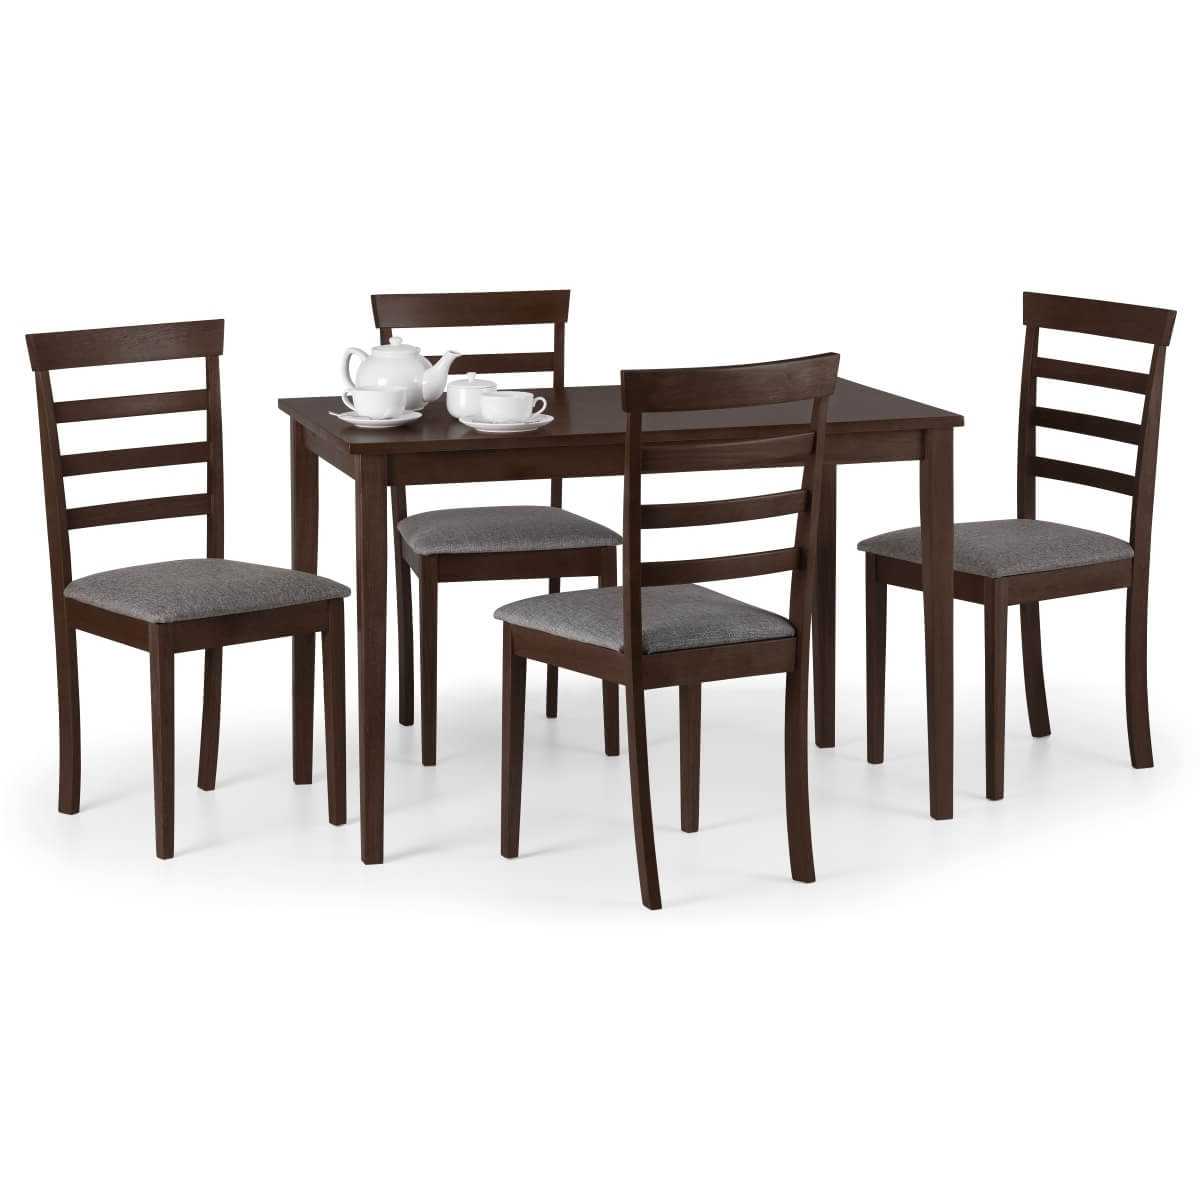 Mahogany Dining Tables And 4 Chairs Intended For Preferred Dining Set – Cleo Dining Table And 4 Dining Chairs In Mahogany Cle (View 13 of 25)